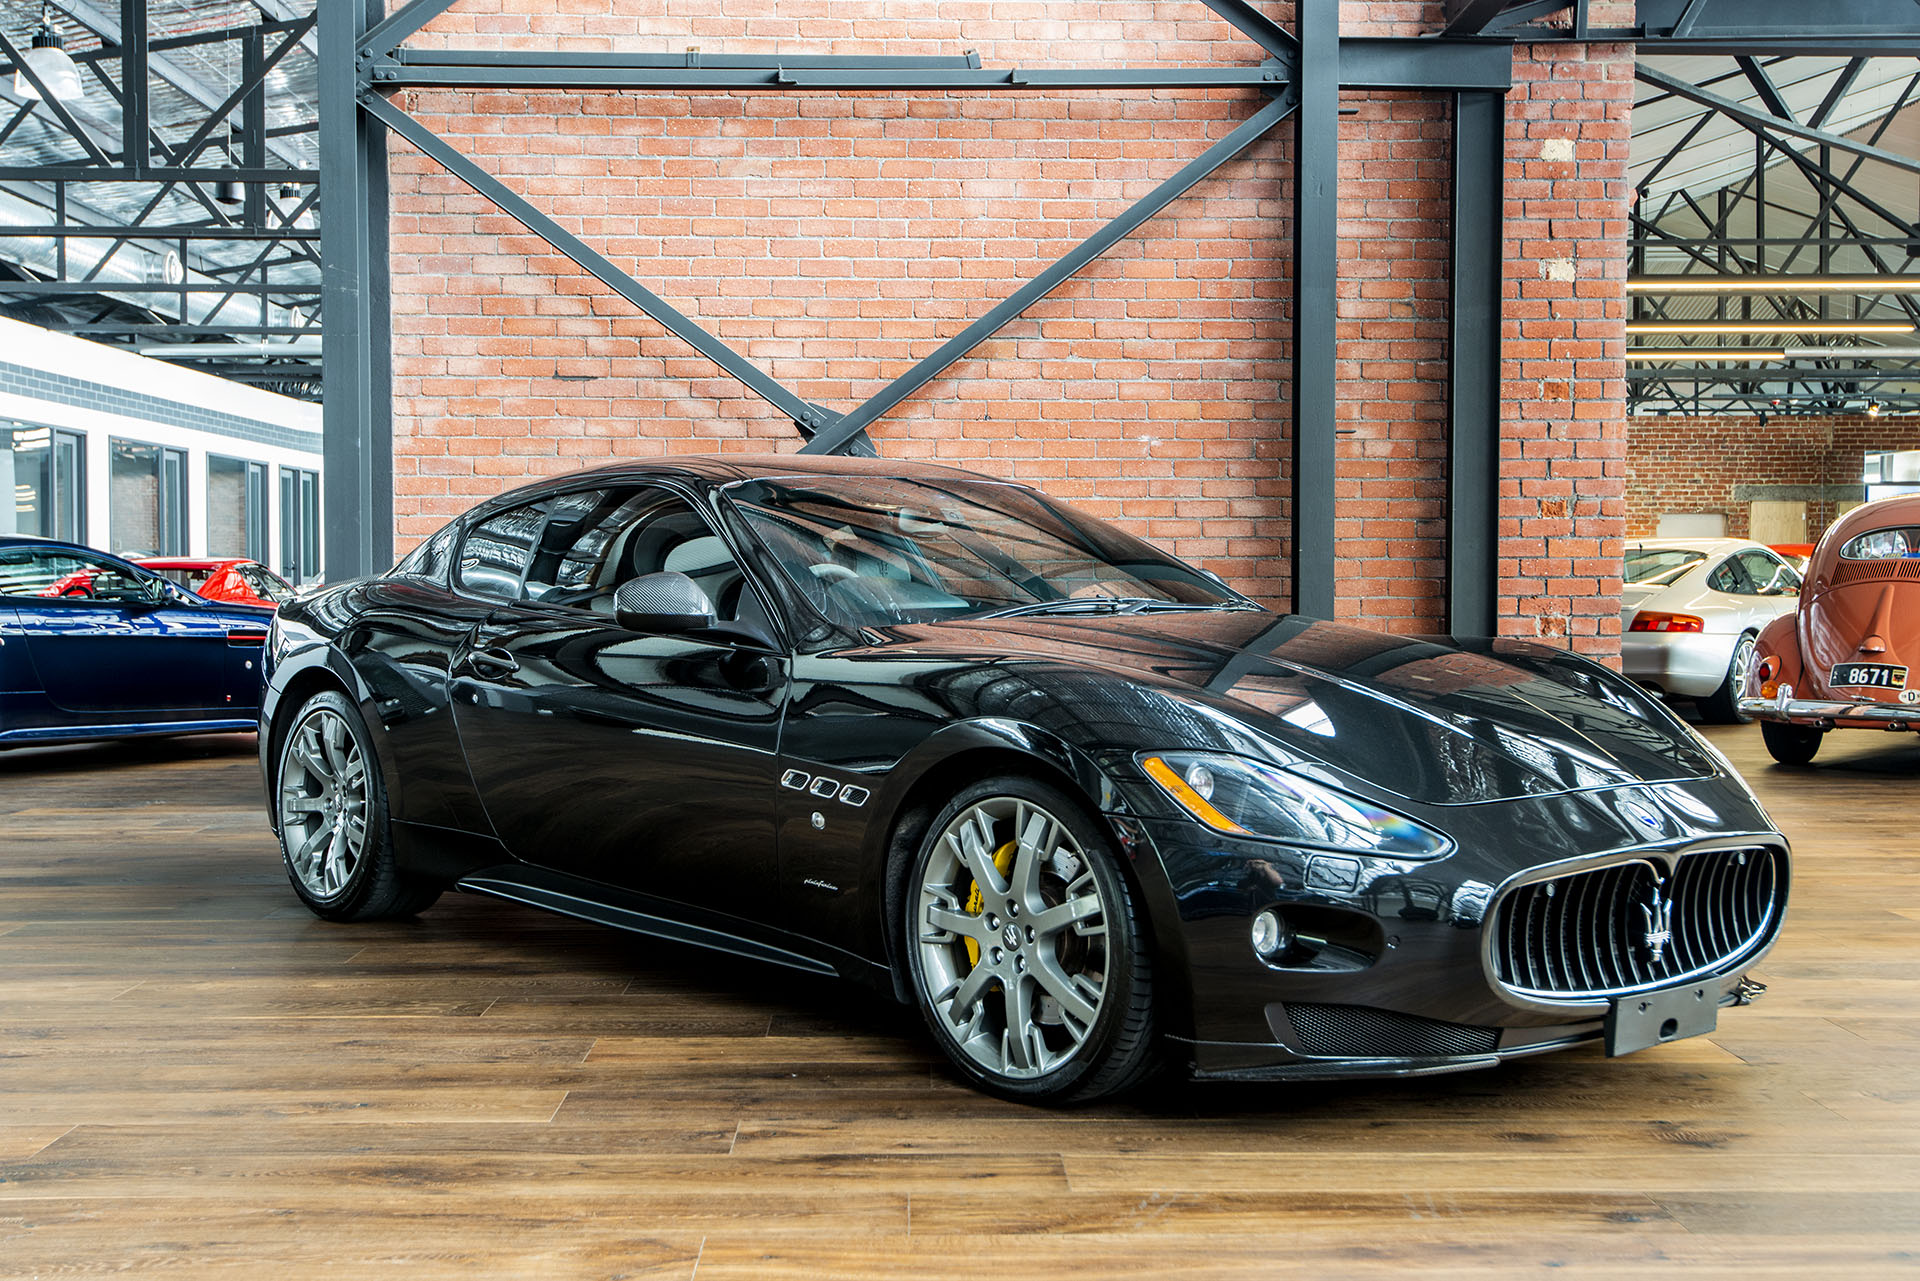 6 Panel Door History >> 2010 Maserati GranTurismo S MC Sportline - Richmonds ...